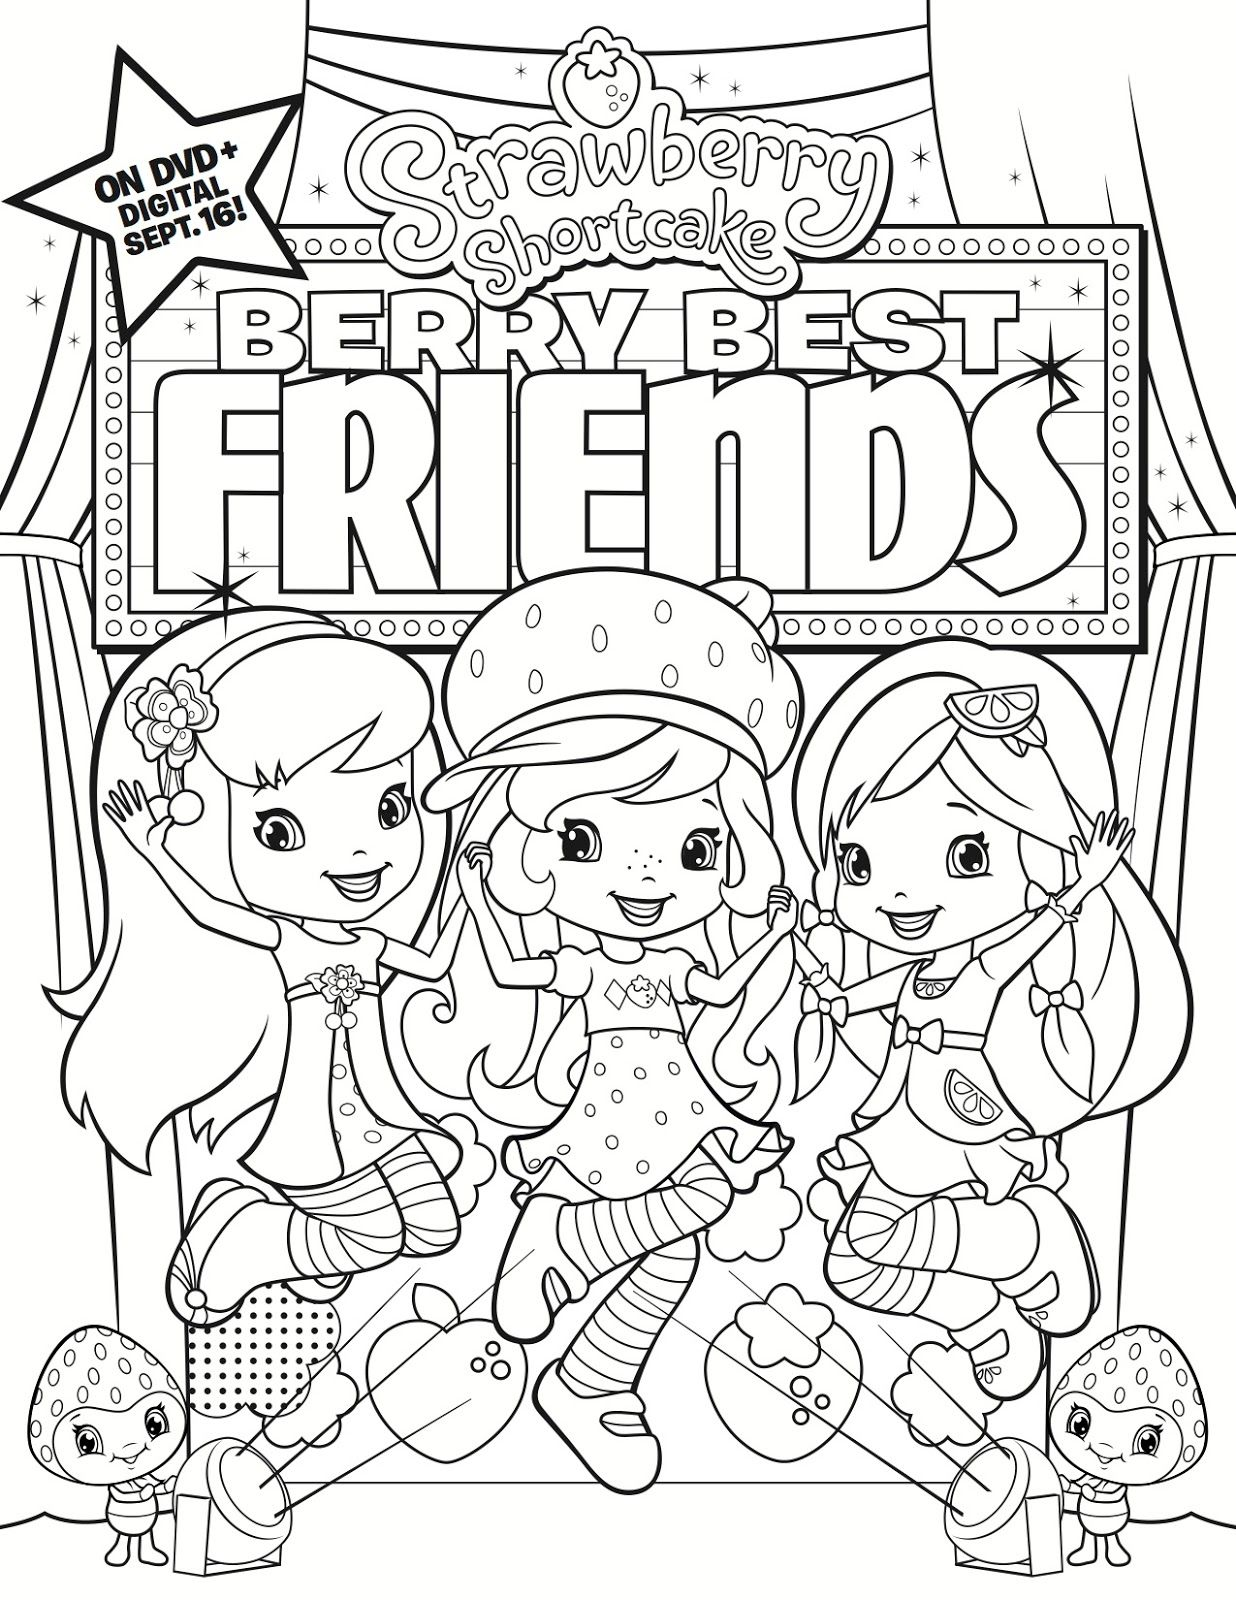 GIVEAWAY: Strawberry Shortcake - Berry Best Friends DVD PLUS a ...